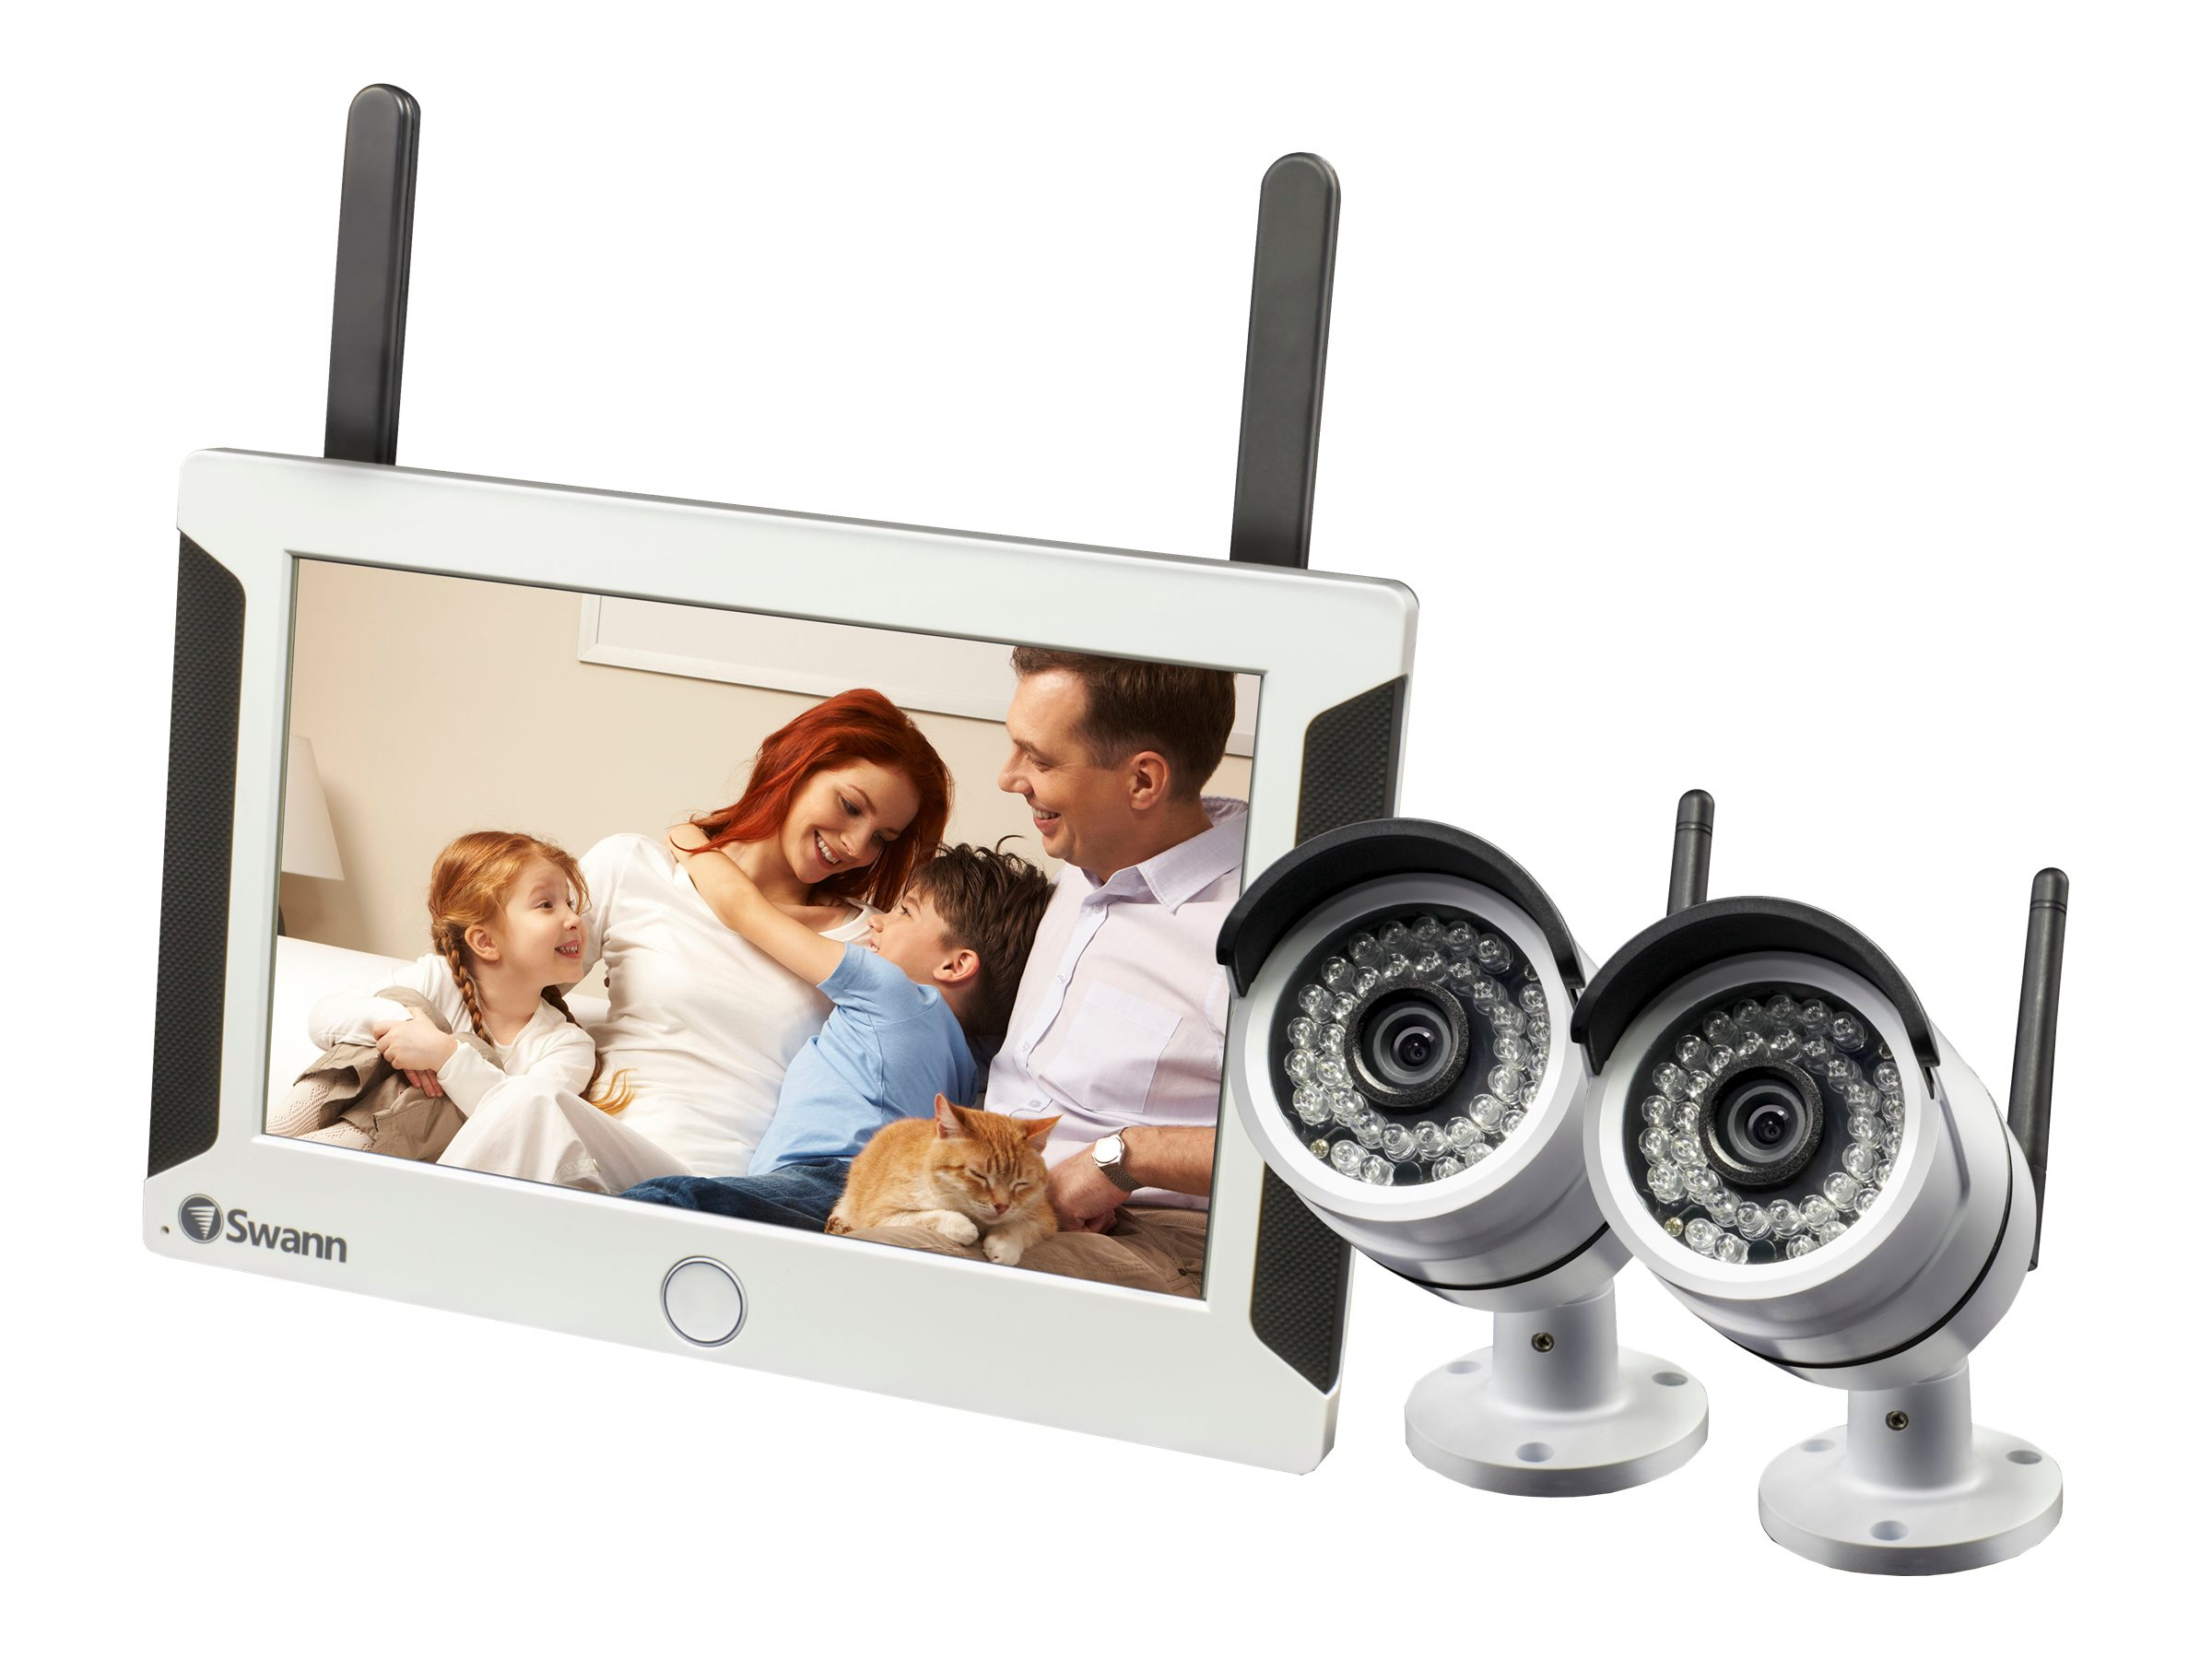 Swann All-in-One SwannSecure Wi-Fi HD Monitoring System with Monitor, 2x Cameras